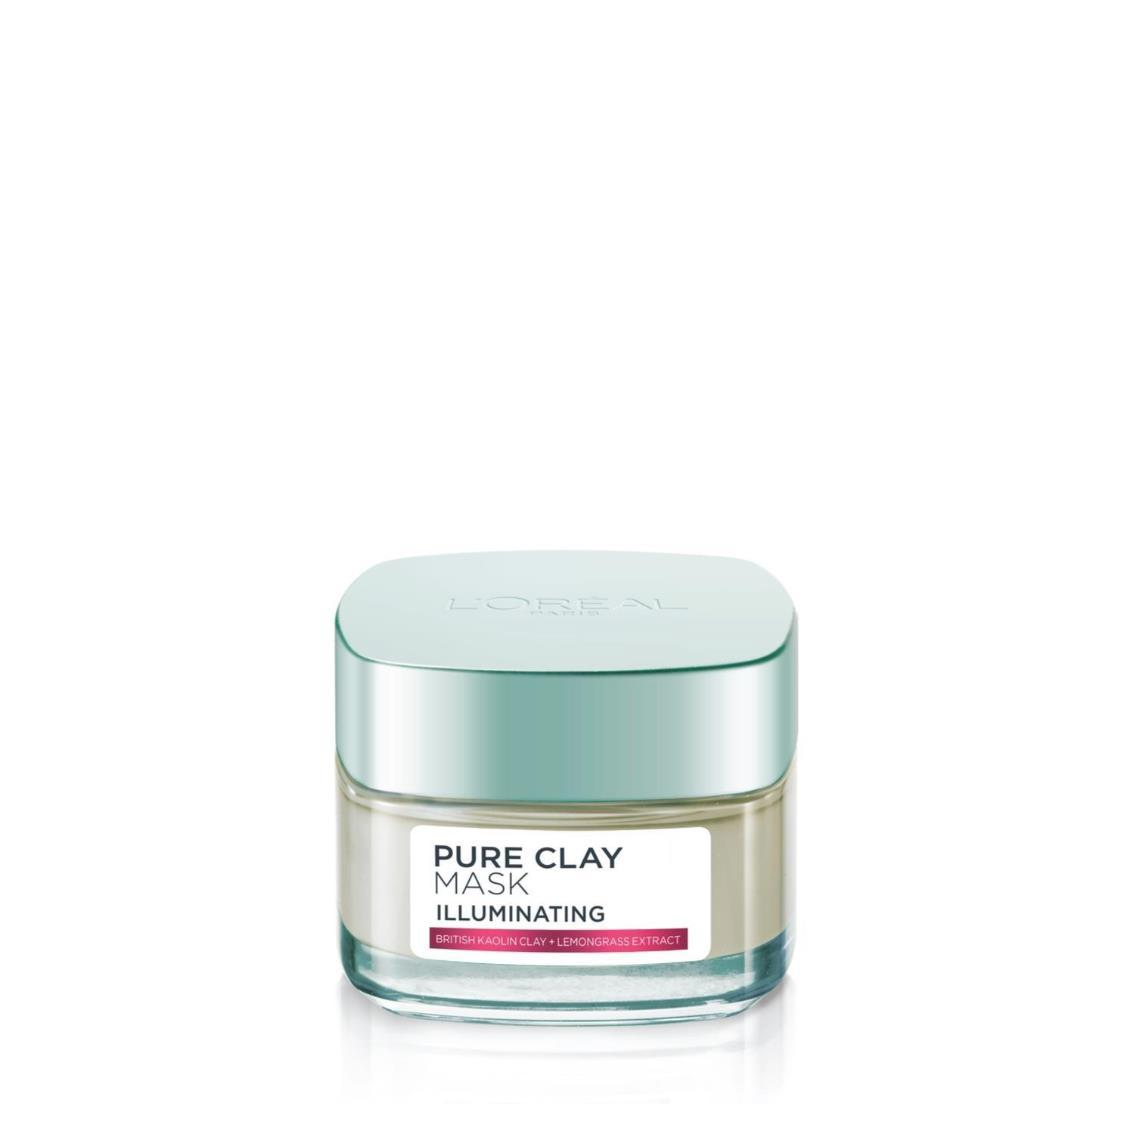 Illuminating Clay Mask 50g